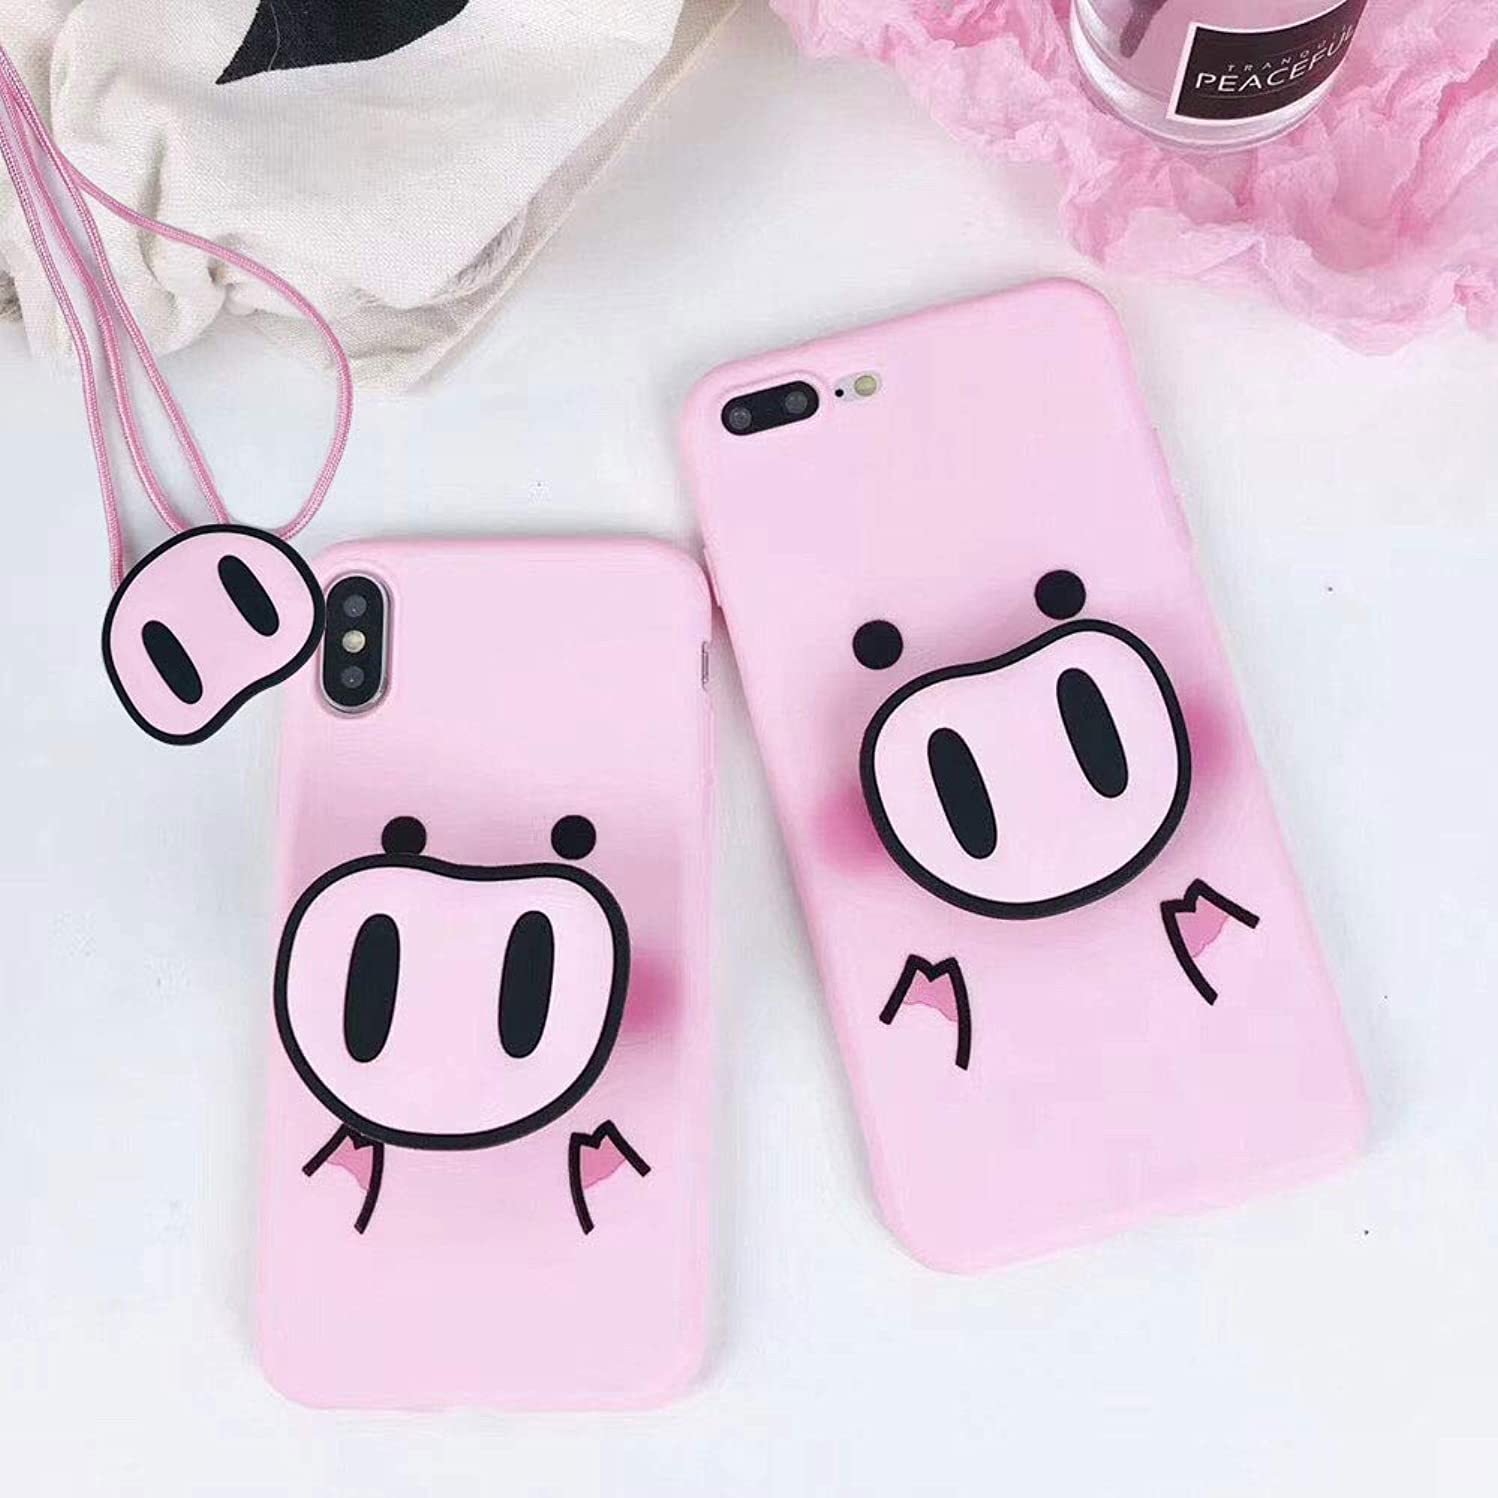 BONTOUJOUR iPhone 7 Plus/iPhone 8 Plus Case, Super Cute 3D Piggy Pattern Serie Soft TPU Cover Pig Style Protector Case with Phone holder and Lanyard - Cute PIG Nose